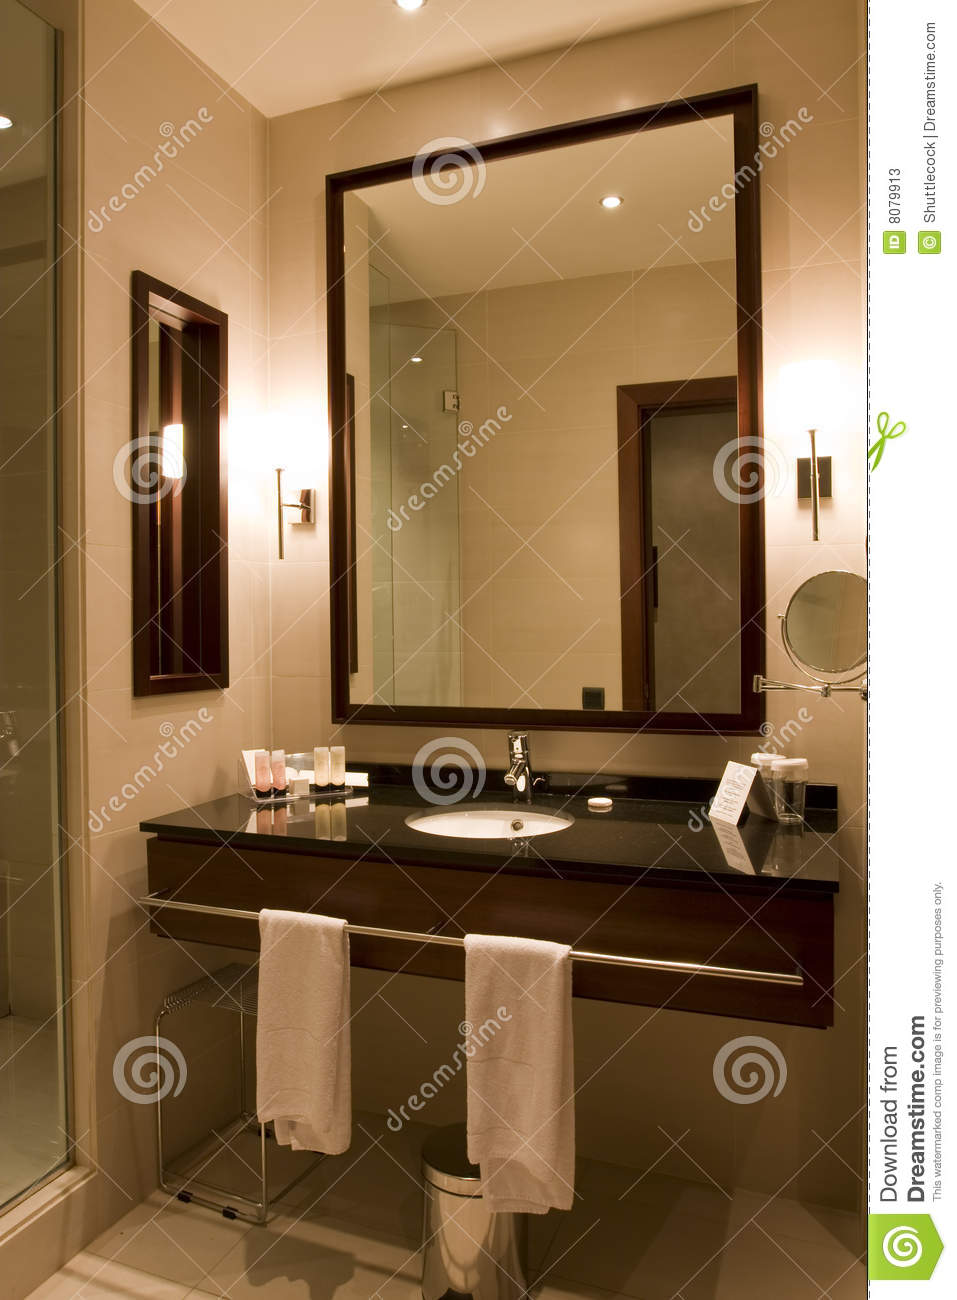 Elegant Hotel Or Apartment Bathroom Stock Image Image Of